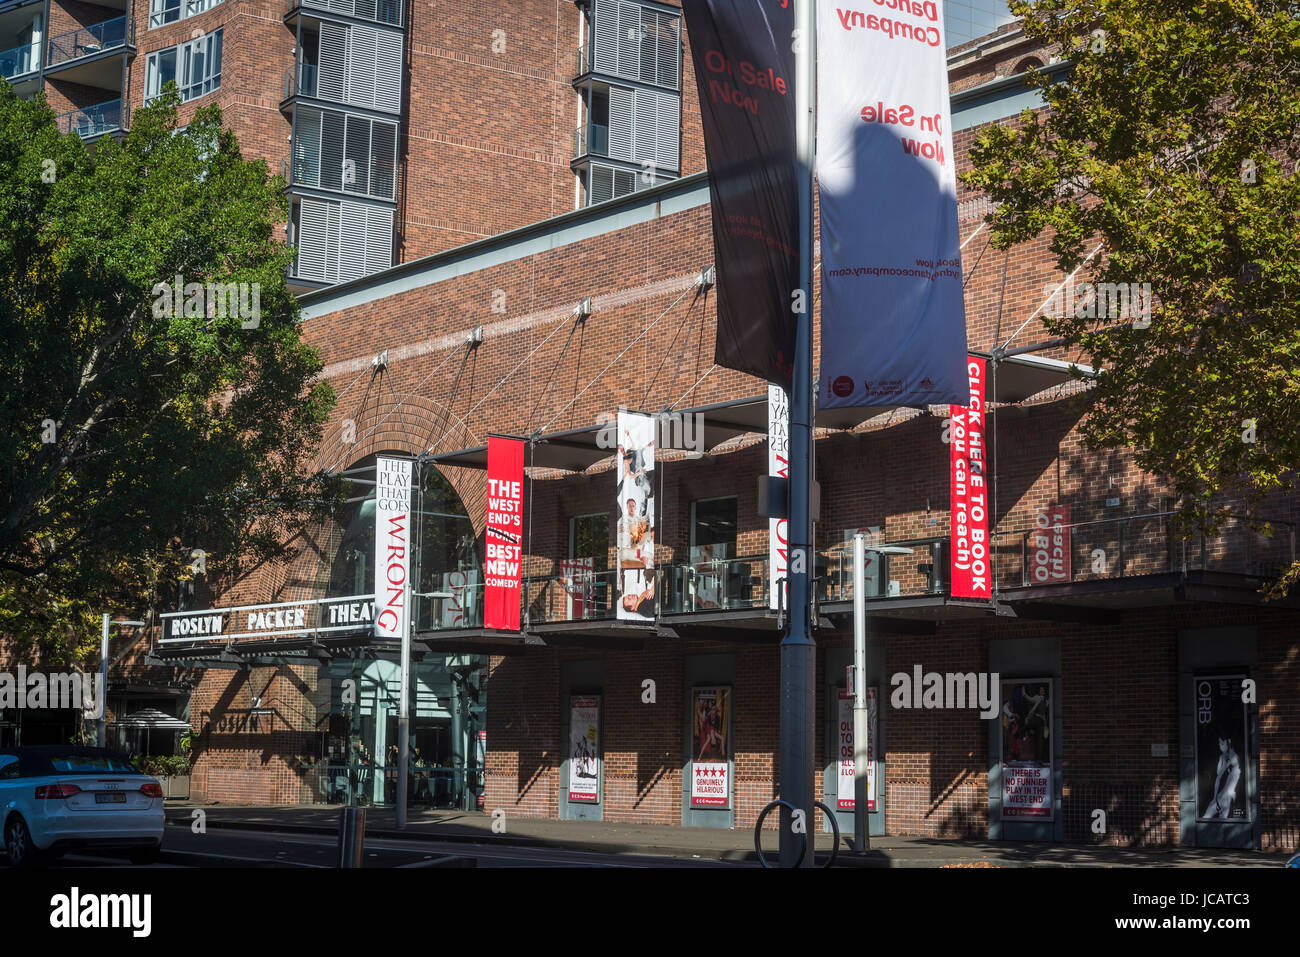 Roslyn Packer Theatre, Walsh Bay, Sydney, NSW, Australia - Stock Image